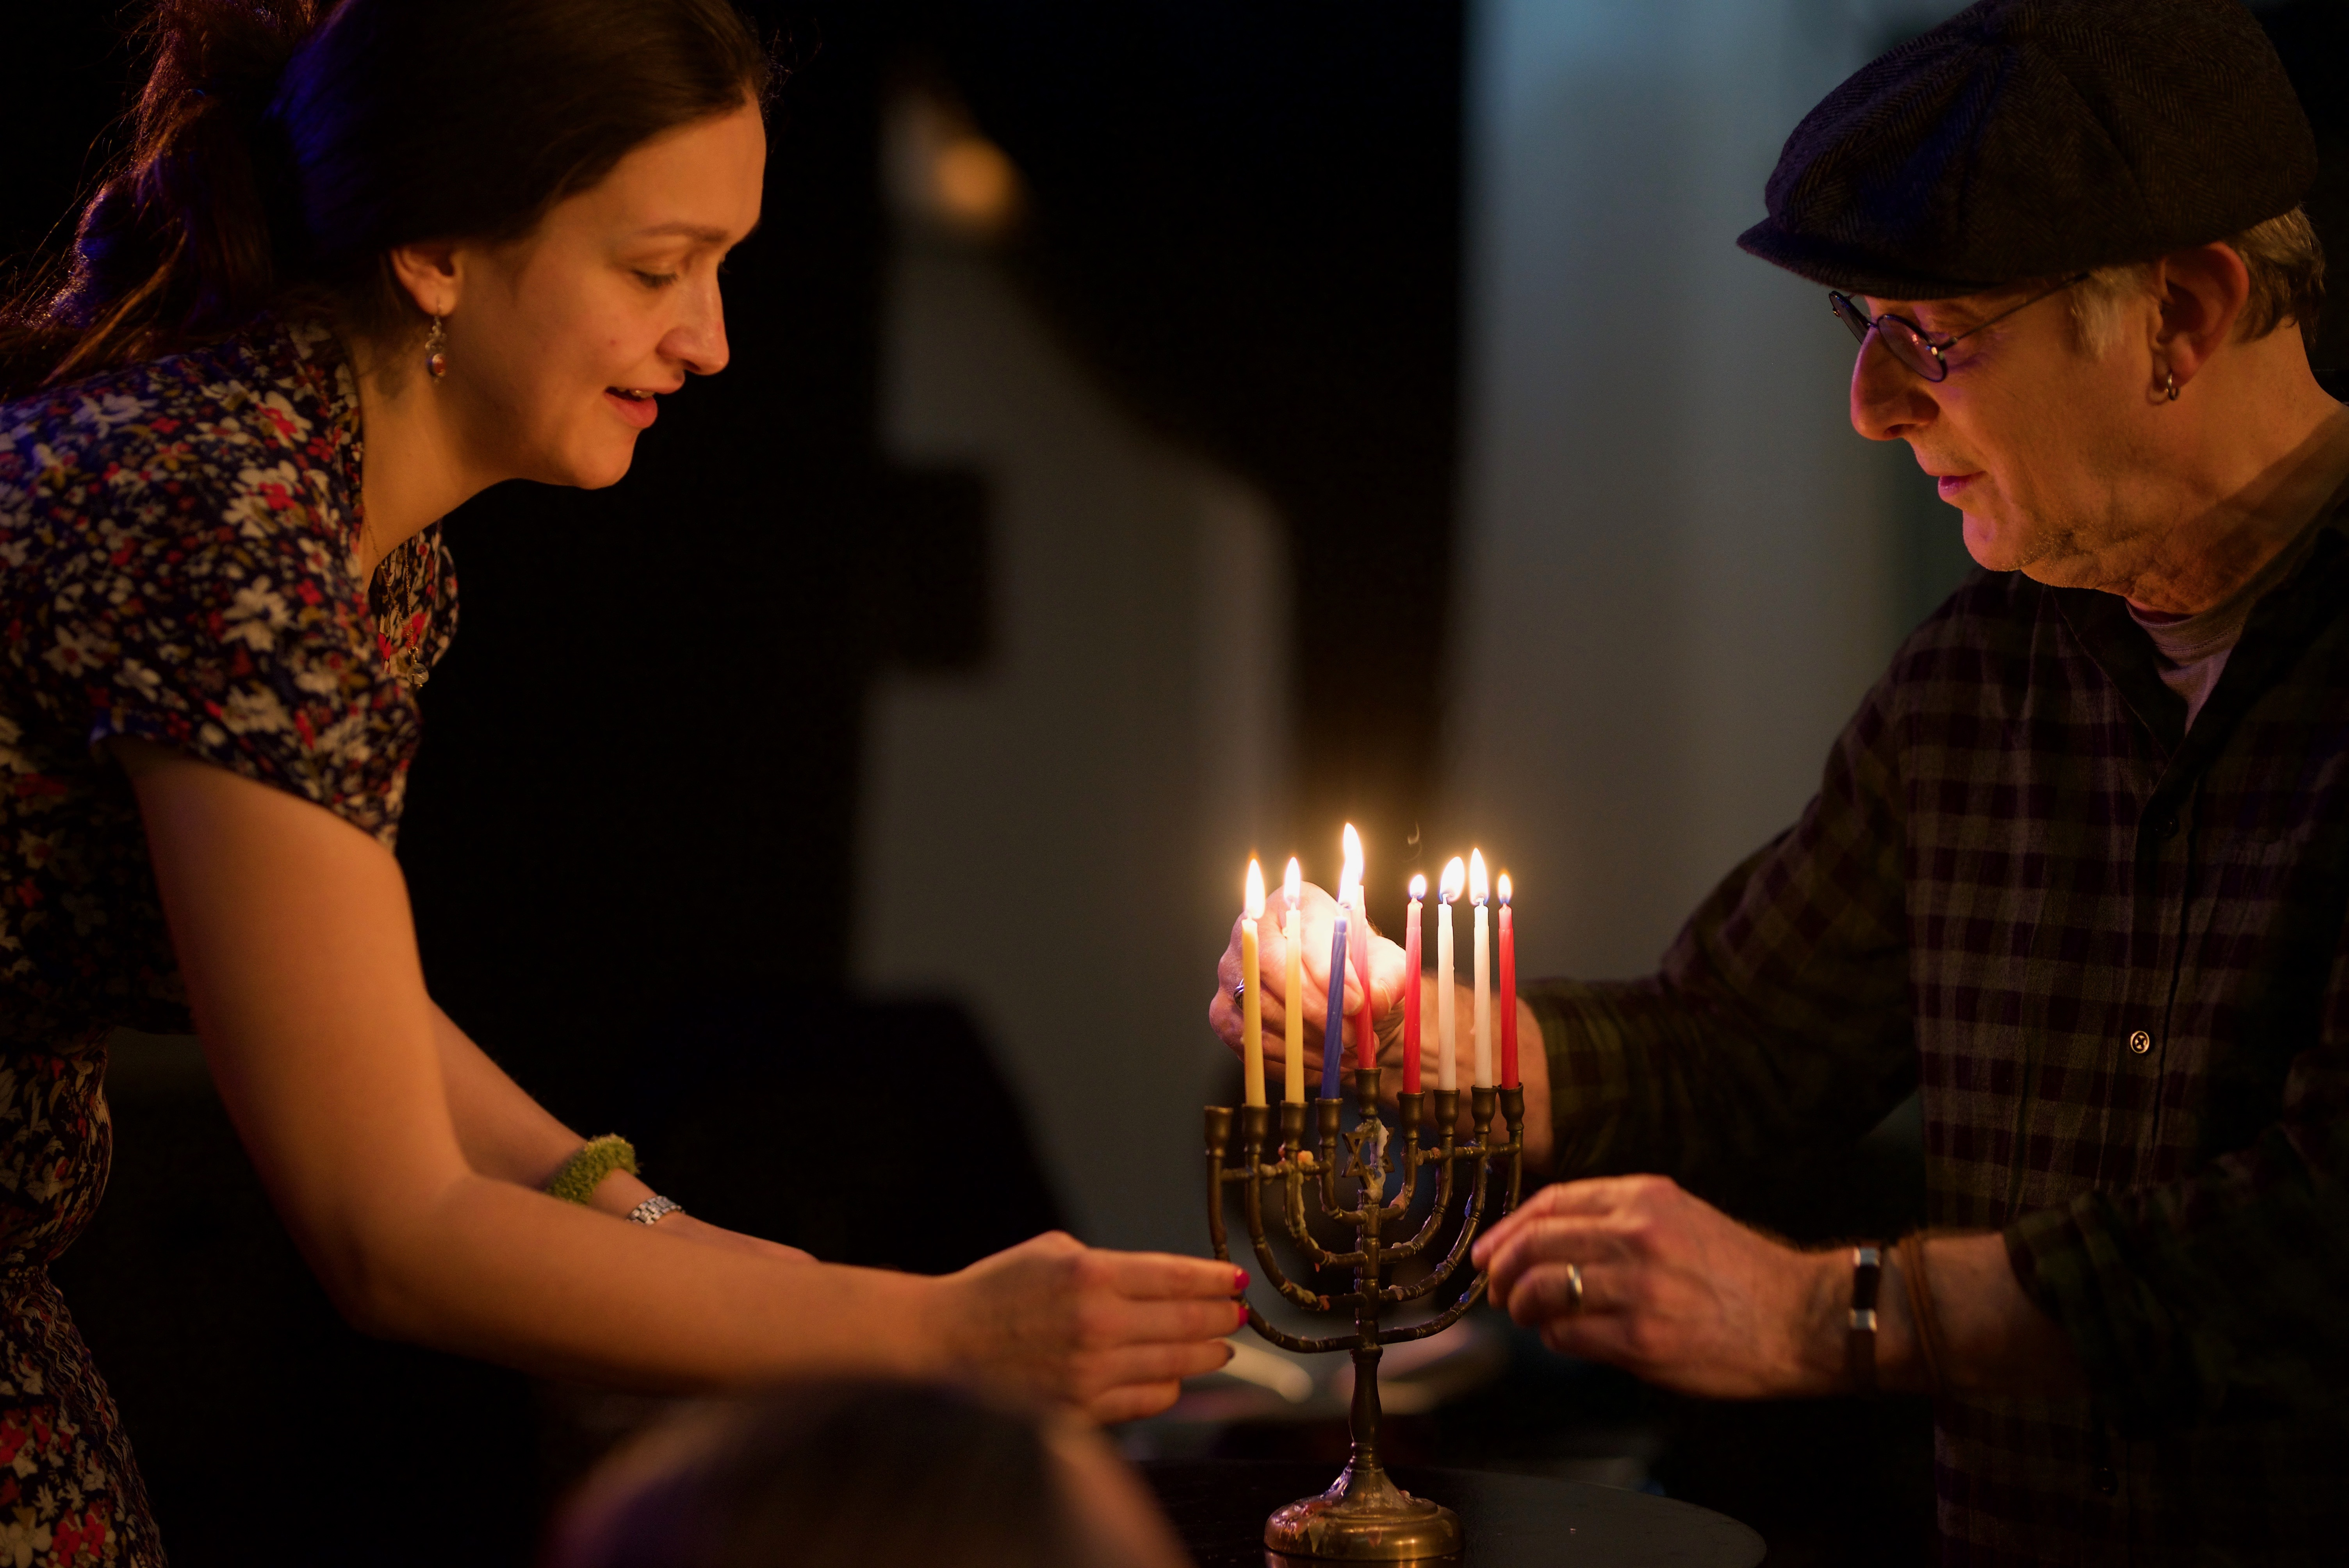 <p>Sasha Lur­je and Michael Alpert light can­dles. Pho­to by Shendl&nbsp;Copitman</p>